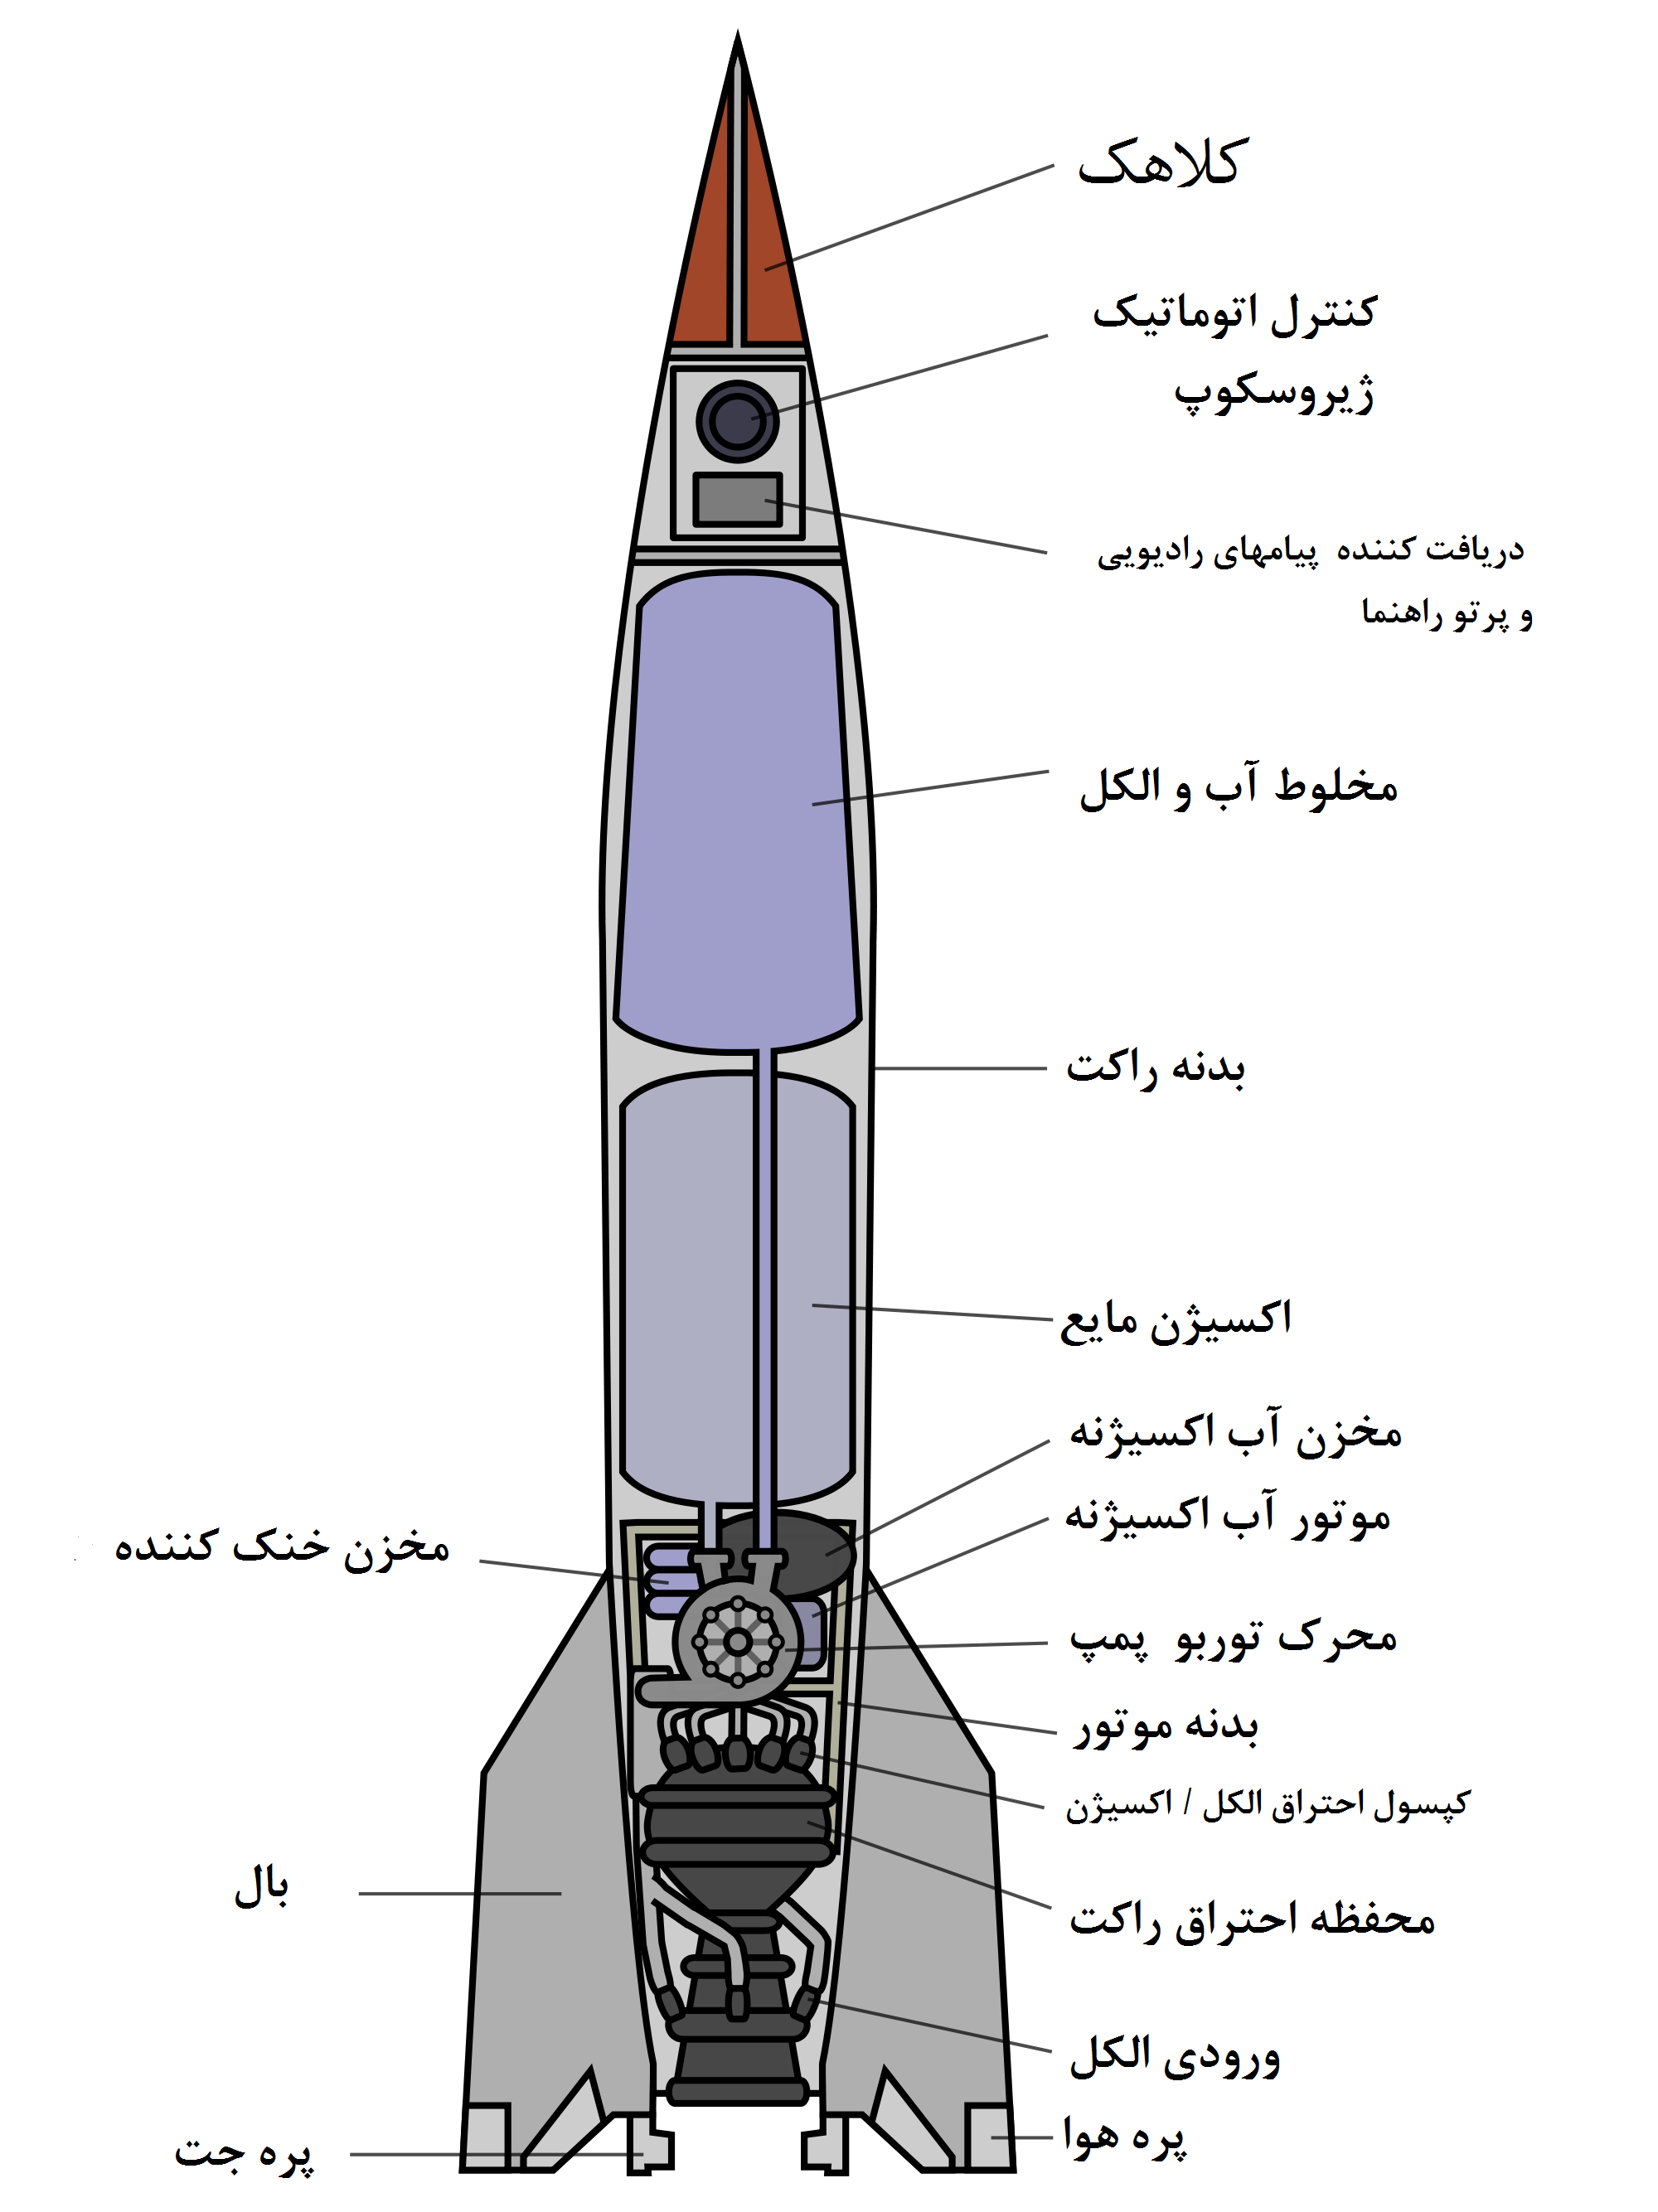 File:V-2 rocket diagram (with persian labels).png